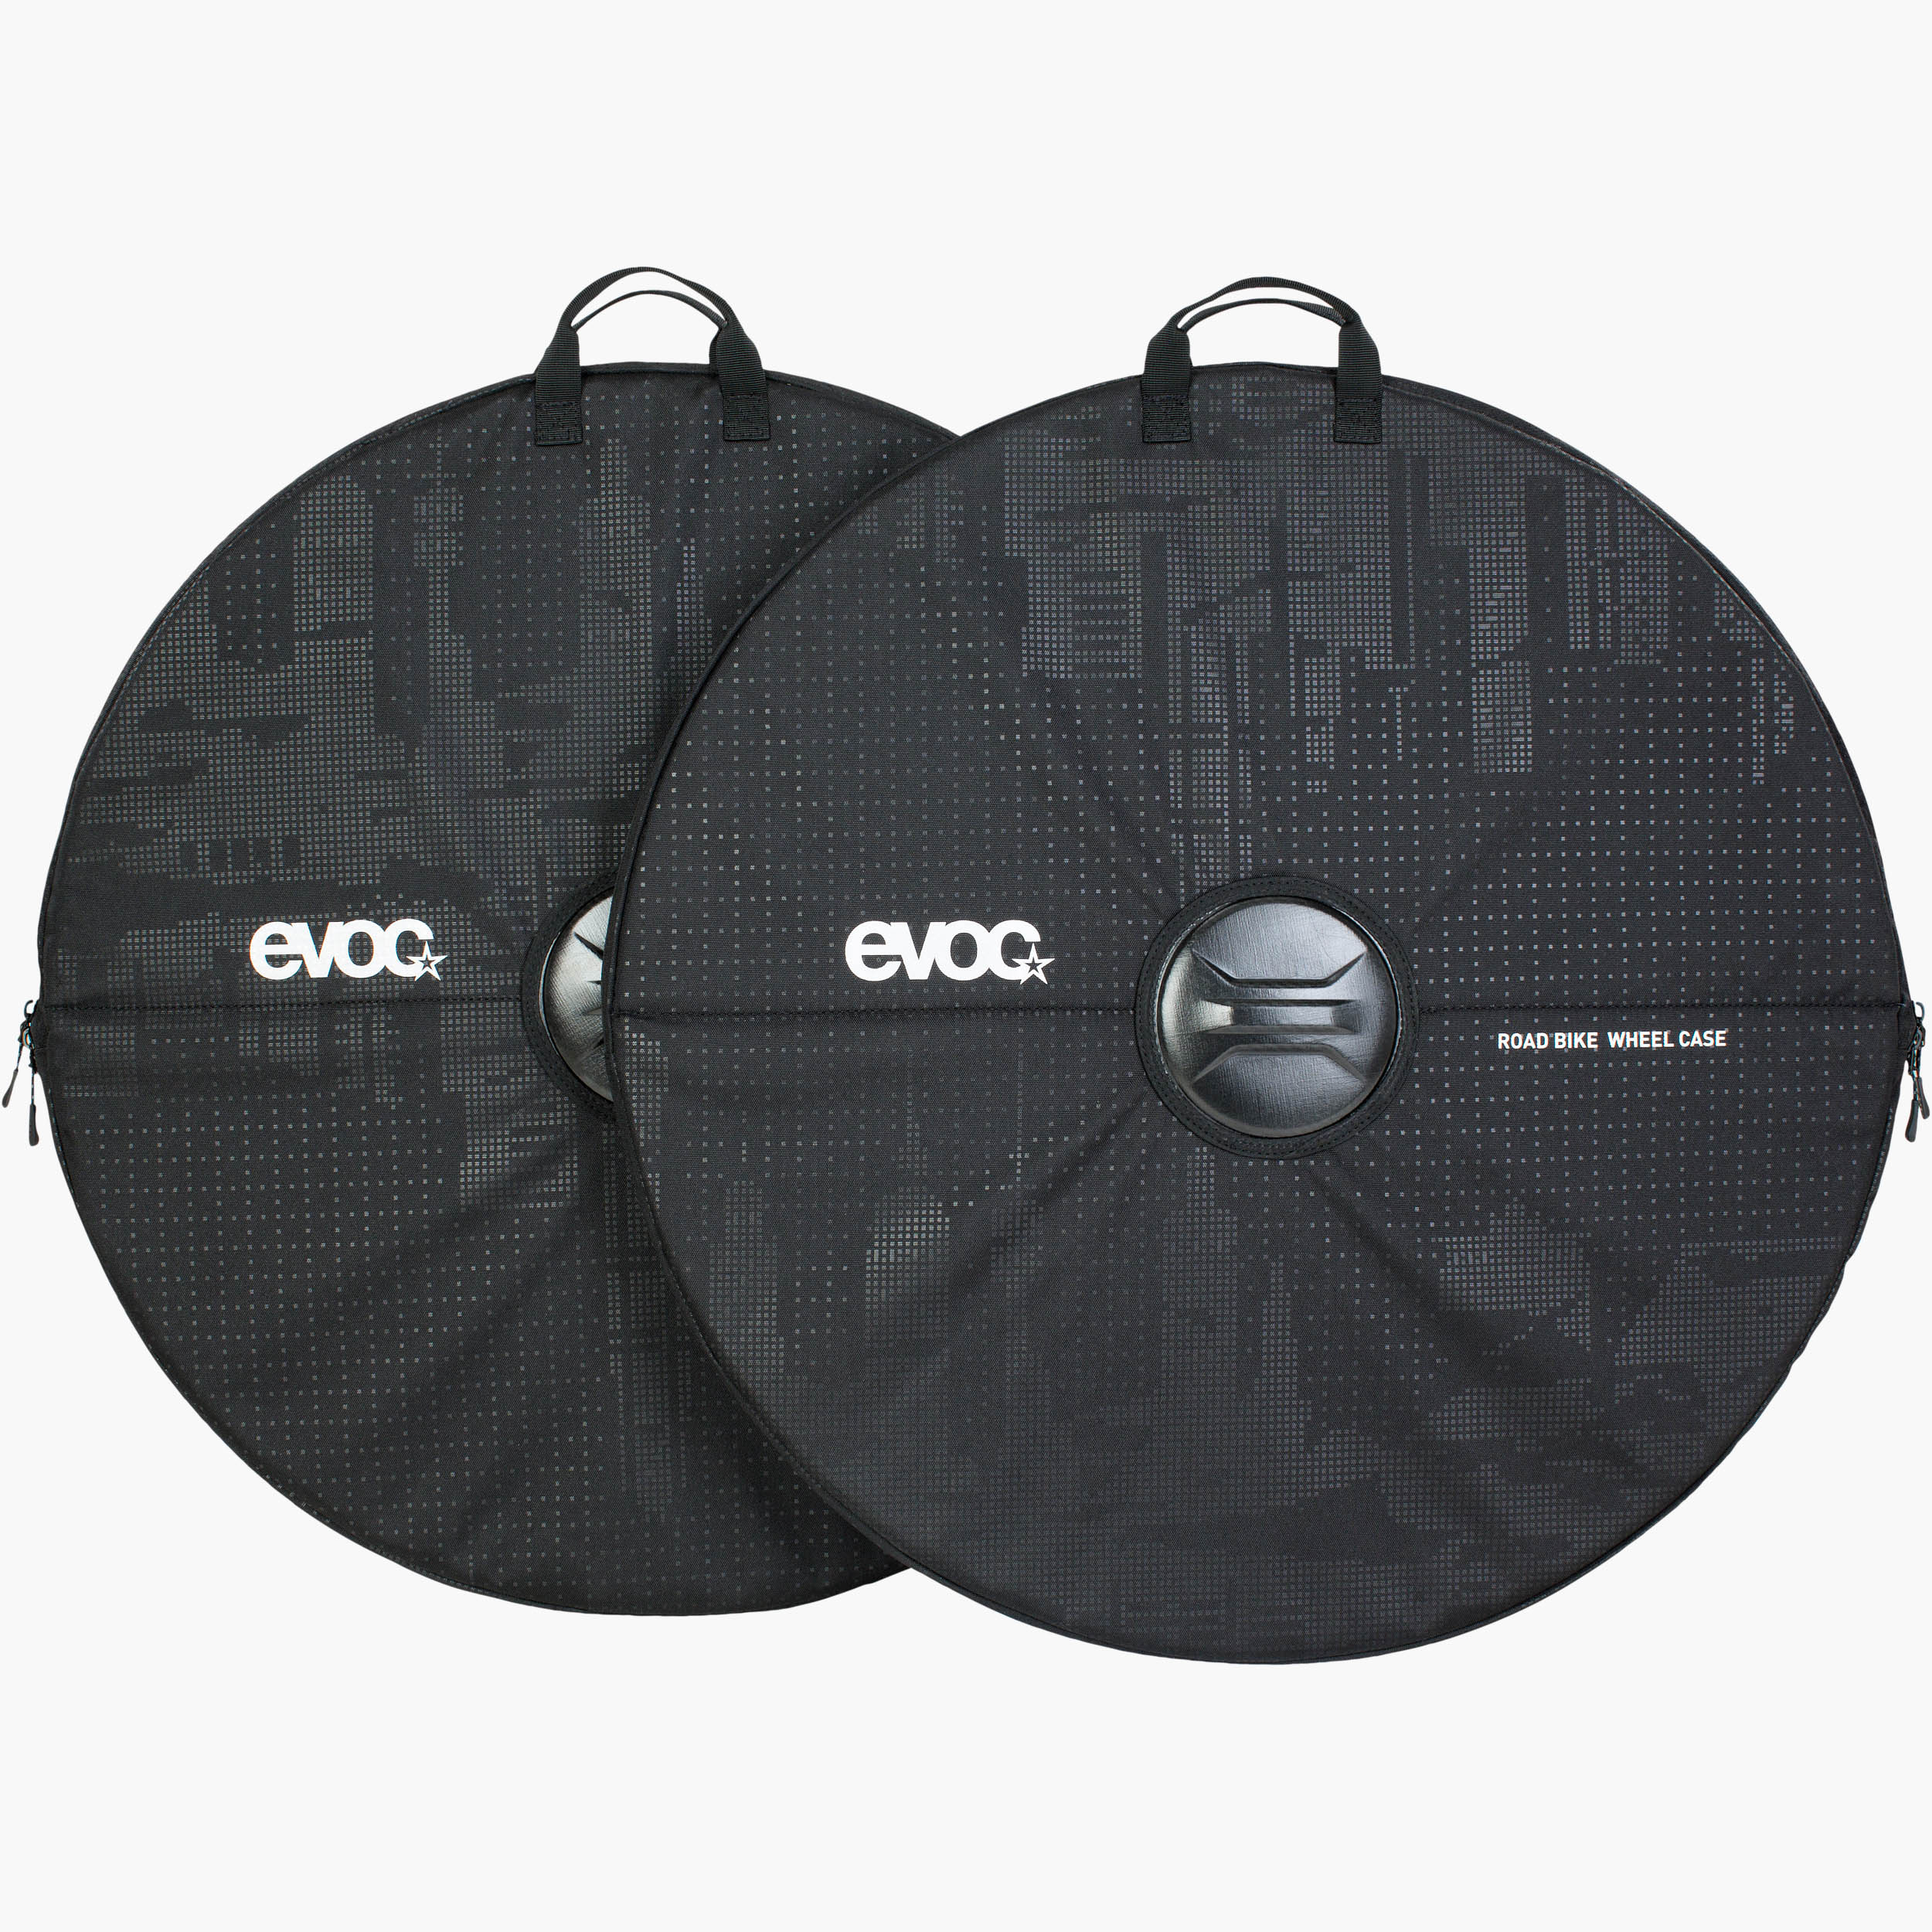 ROAD BIKE WHEEL CASE (2 pcs set)